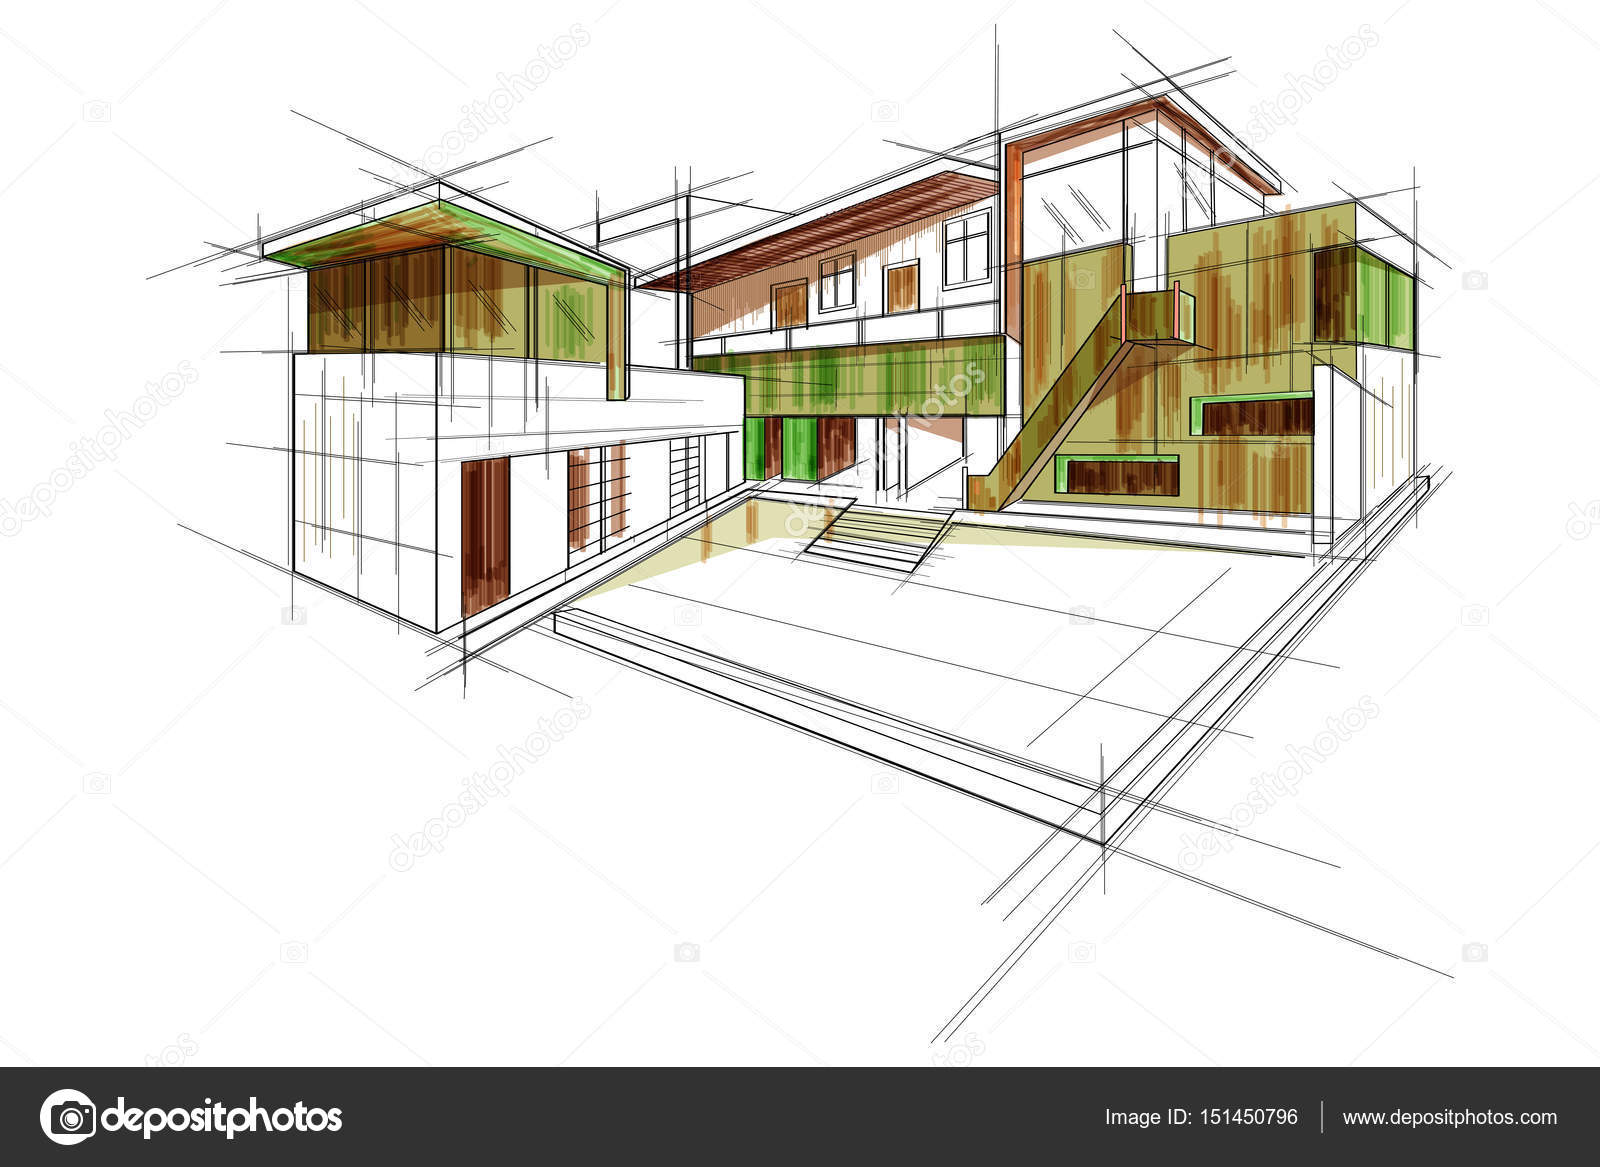 Sketch of exterior building draft blueprint design stock vector sketch of exterior building draft blueprint design stock vector malvernweather Images